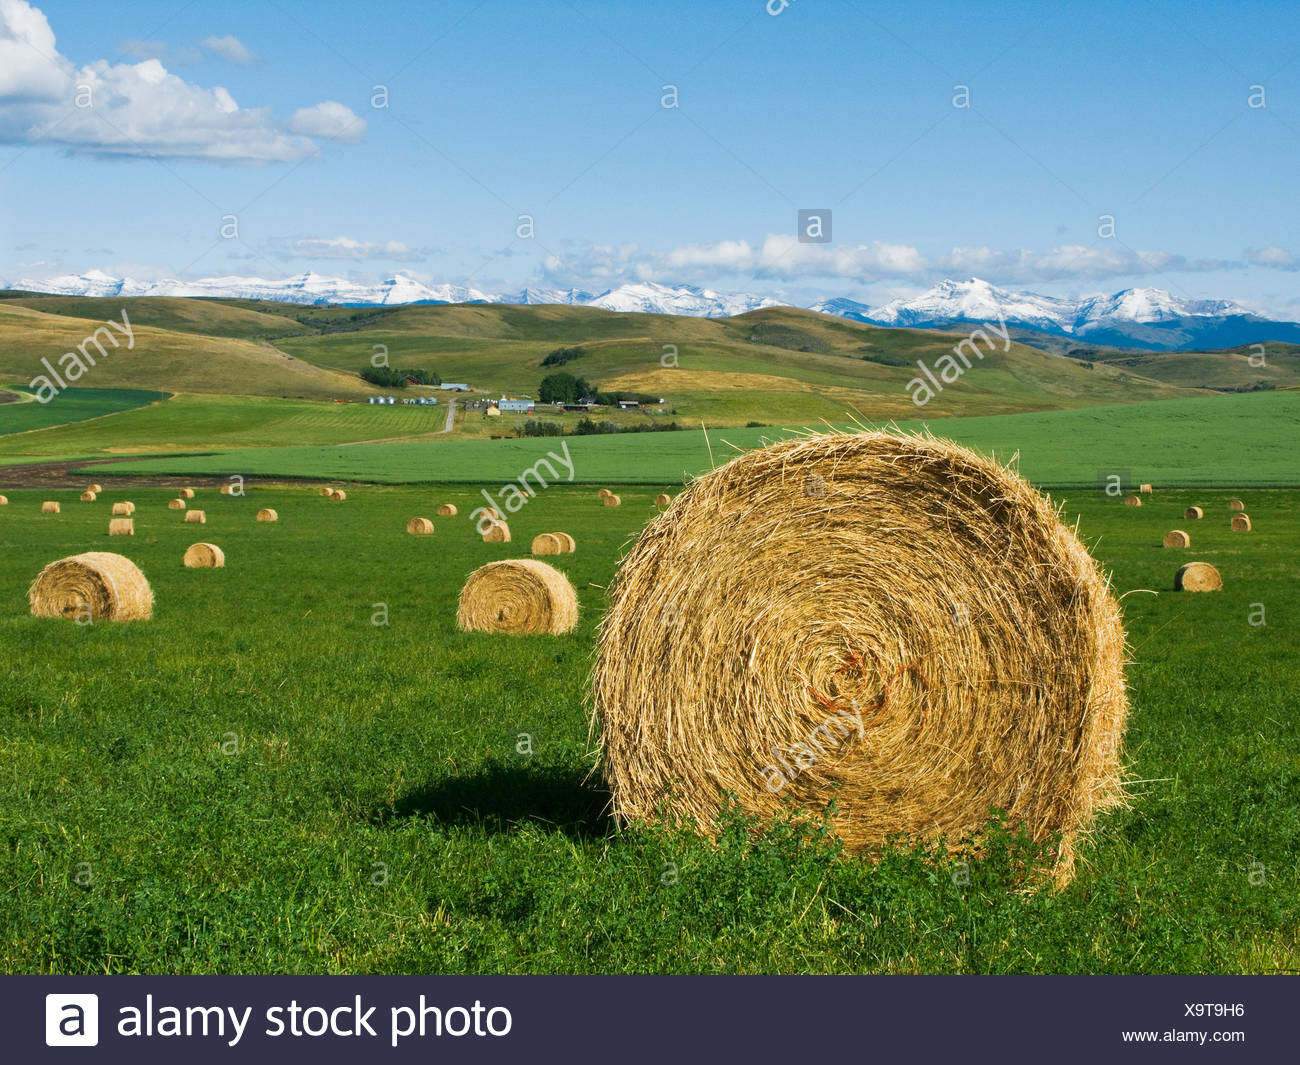 Agriculture - Round hay bales on an alfalfa field in the foothills of the Canadian Rockies in the distance / Alberta, Canada. Stock Photo